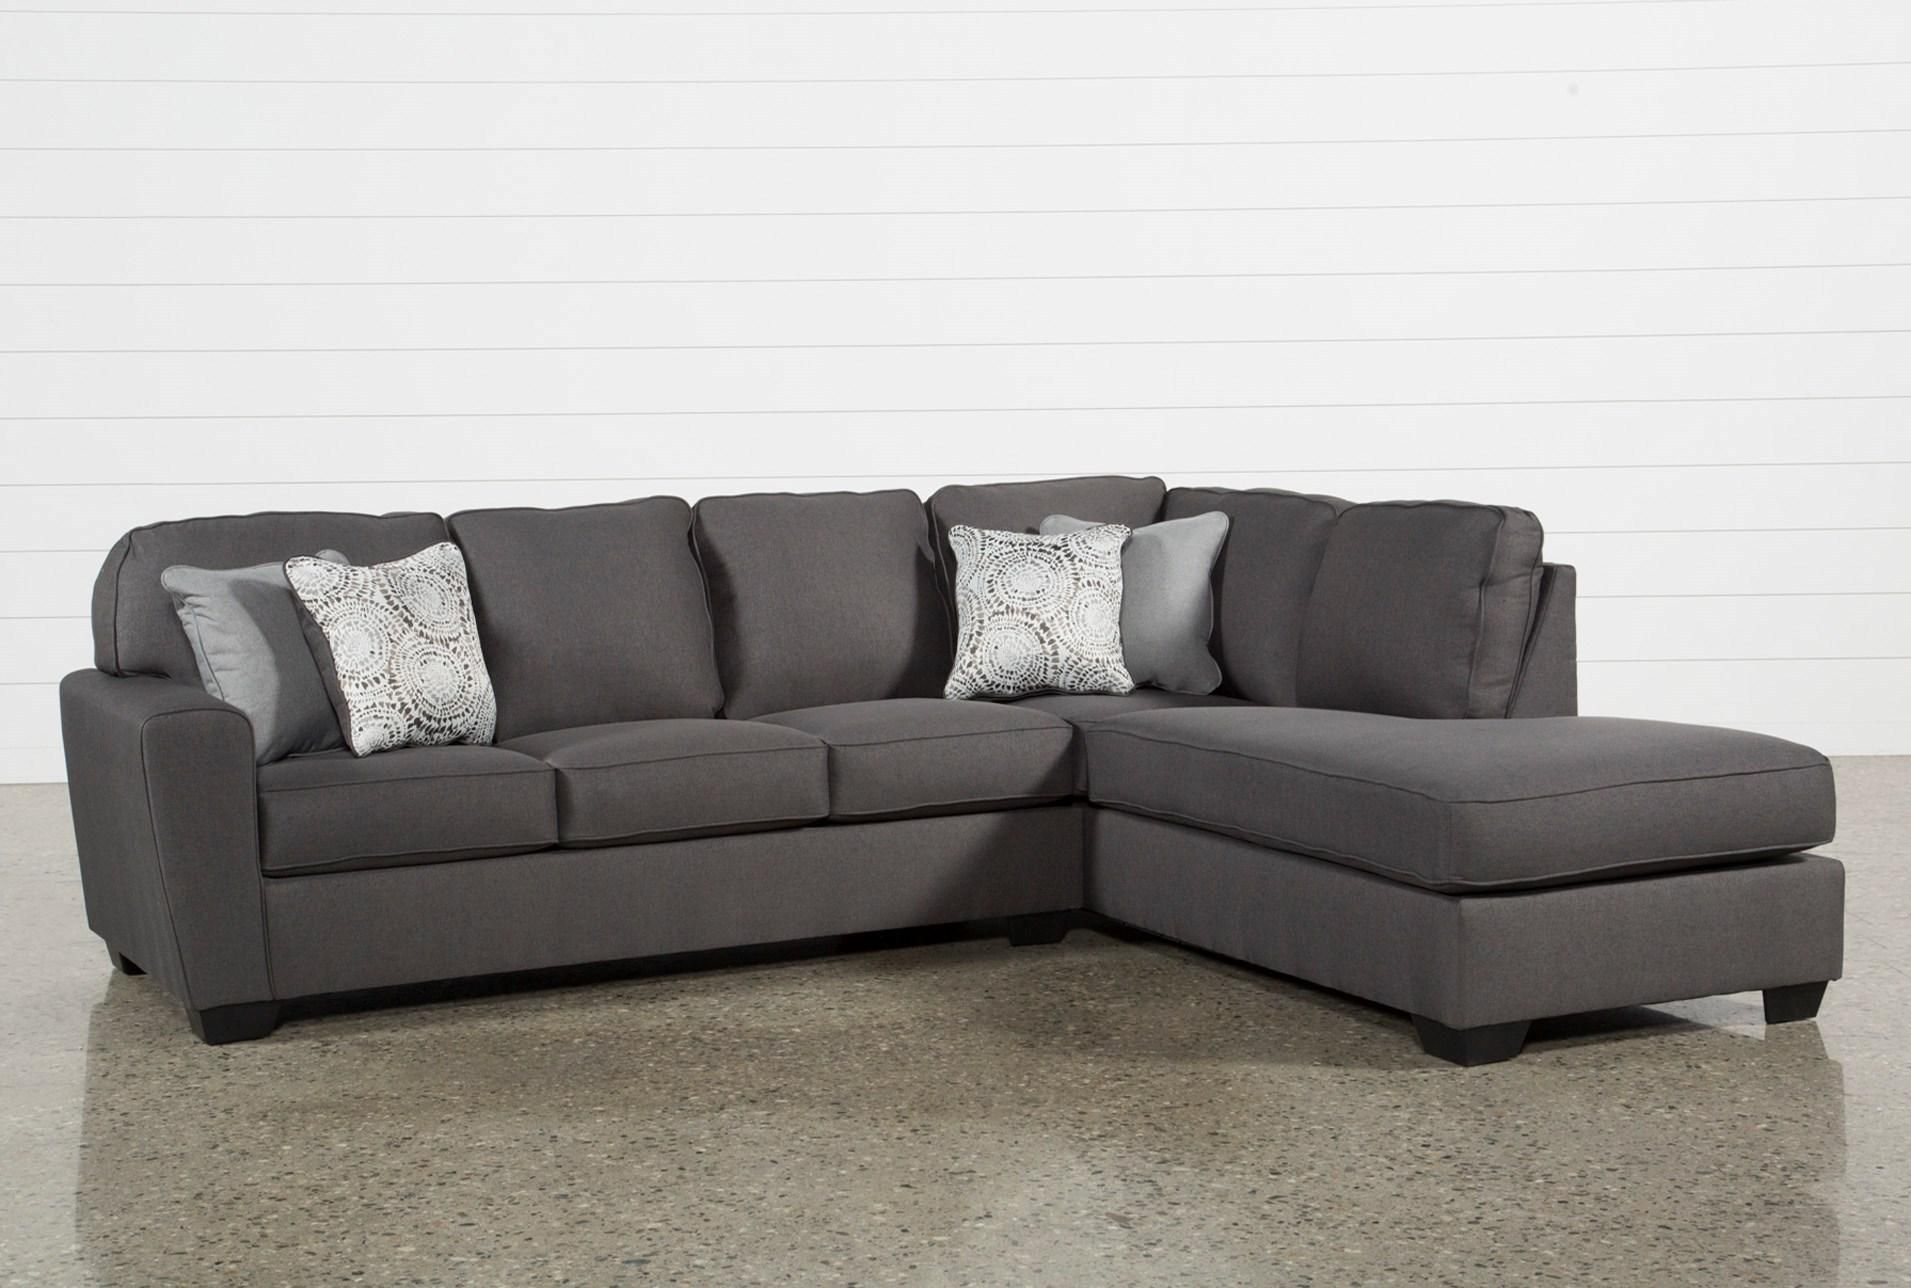 Mcdade Graphite 2 Piece Sectional W/raf Chaise | Livingroom | Living In Mcdade Ash Sofa Chairs (Photo 3 of 20)